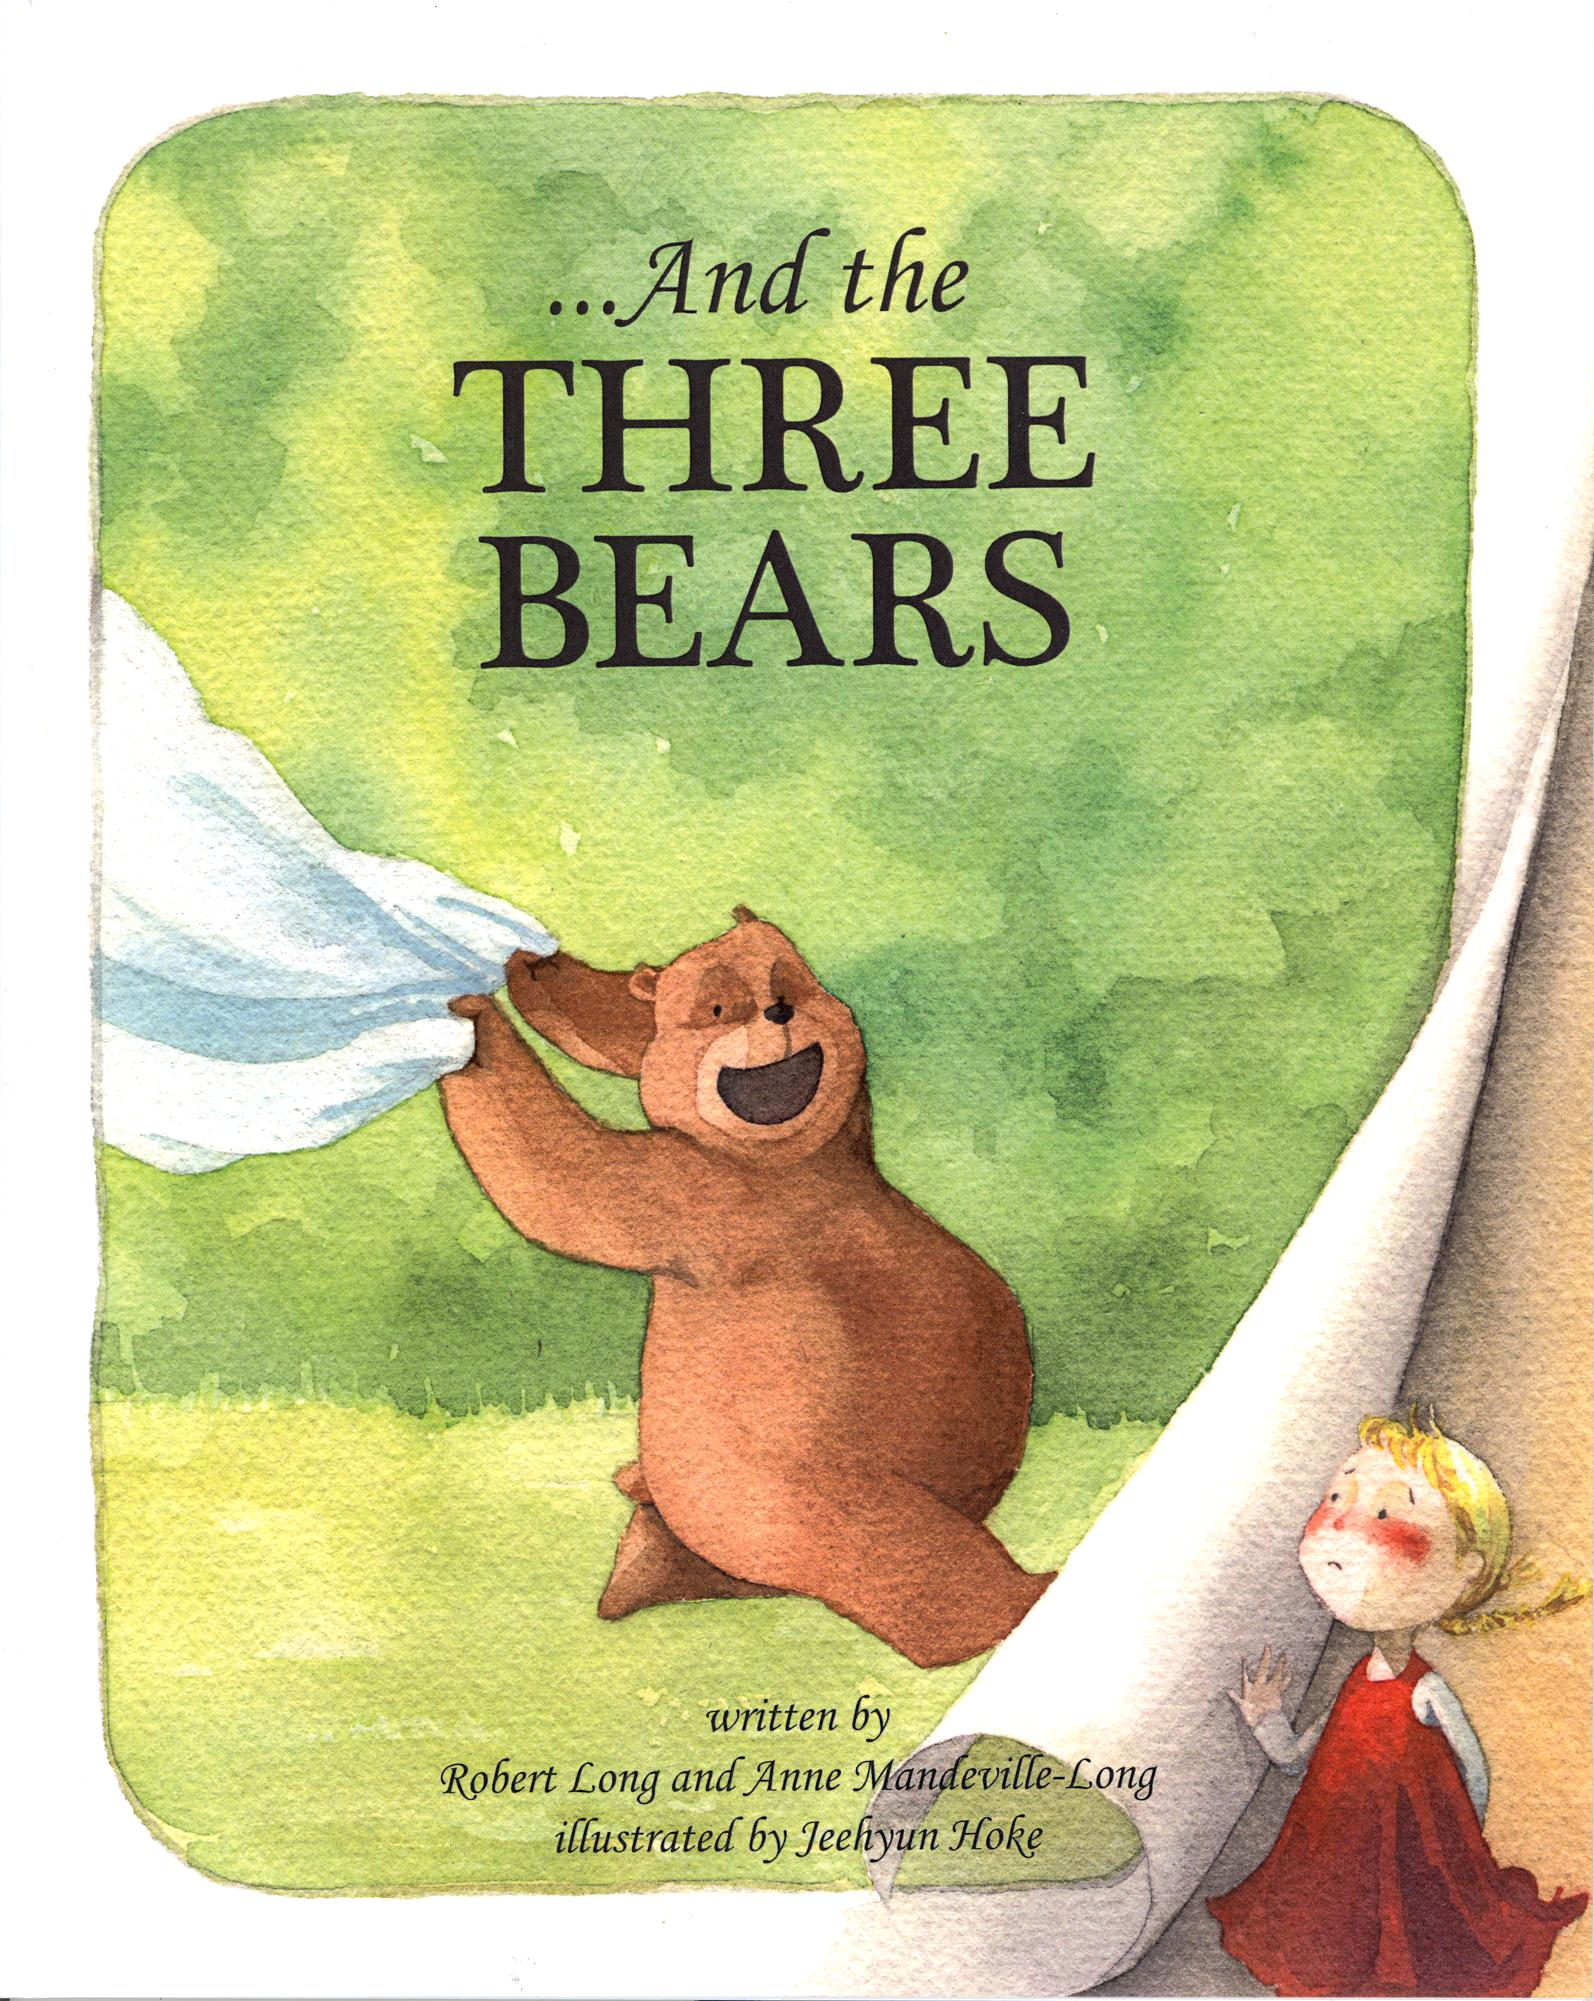 Illustrated Children S Book Covers ~ Scholastic releases exclusive cover of upcoming illustrated